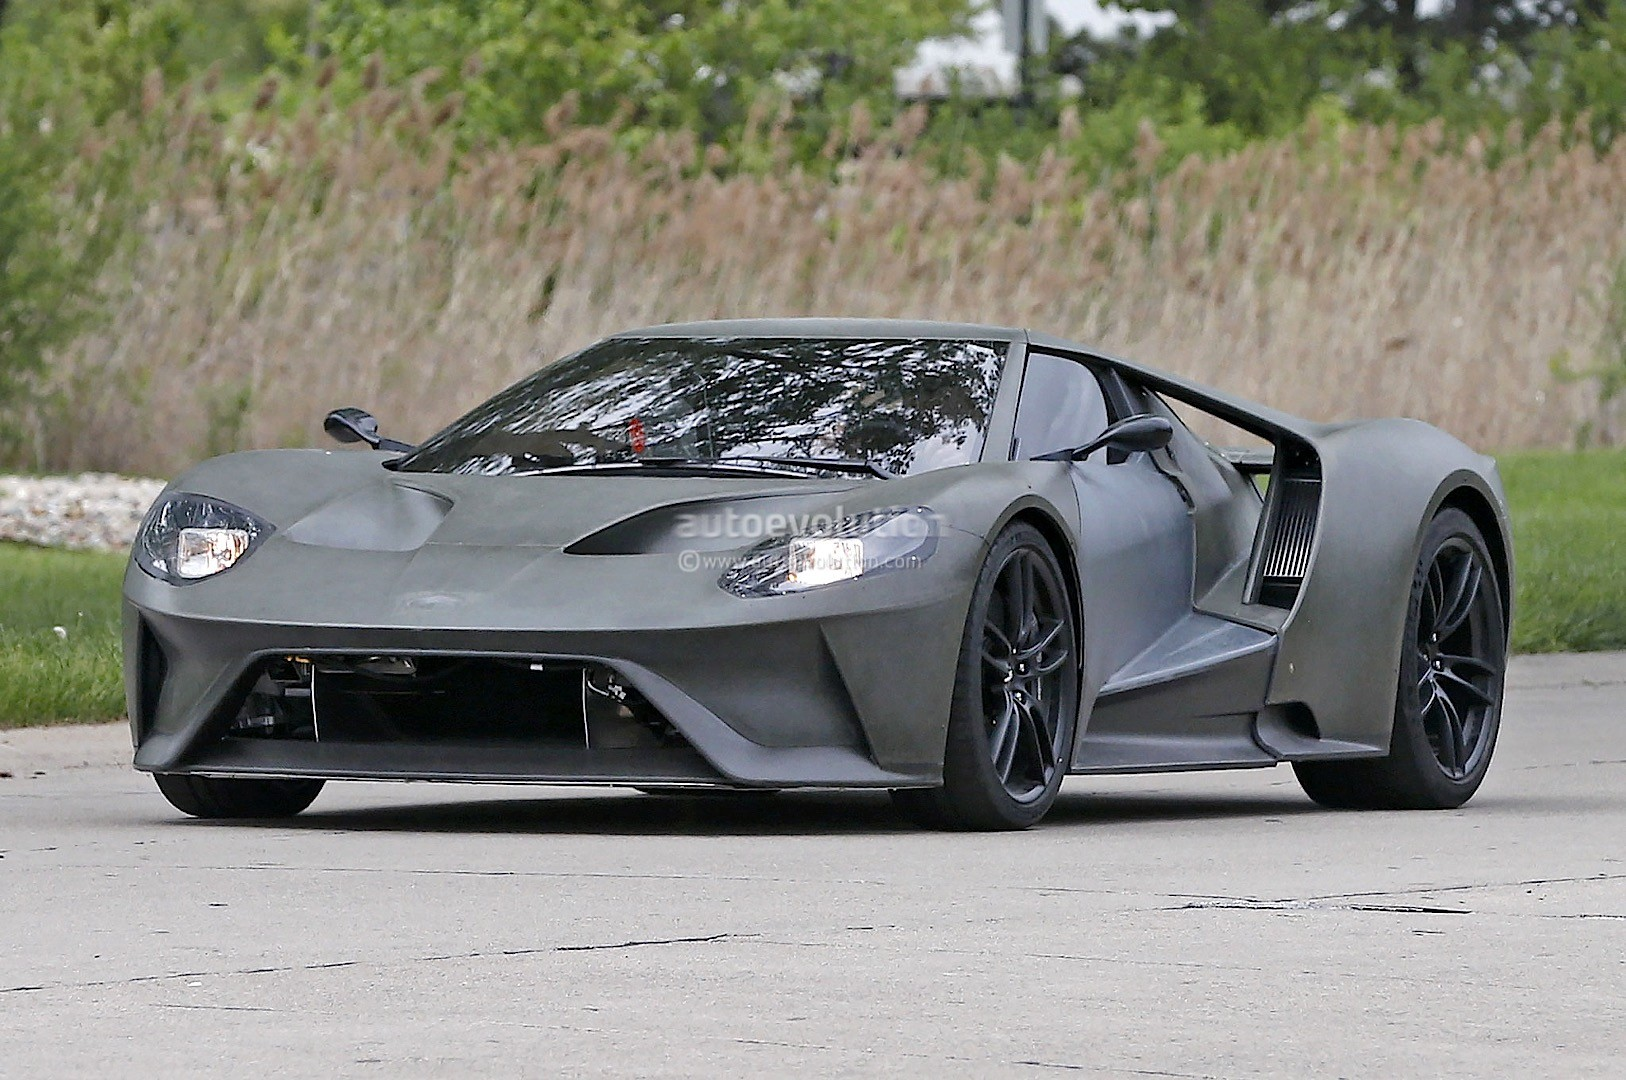 2017-ford-gt-test-mule-spied-looks-apocalyptic-sans-paint-photo-gallery_2.jpg